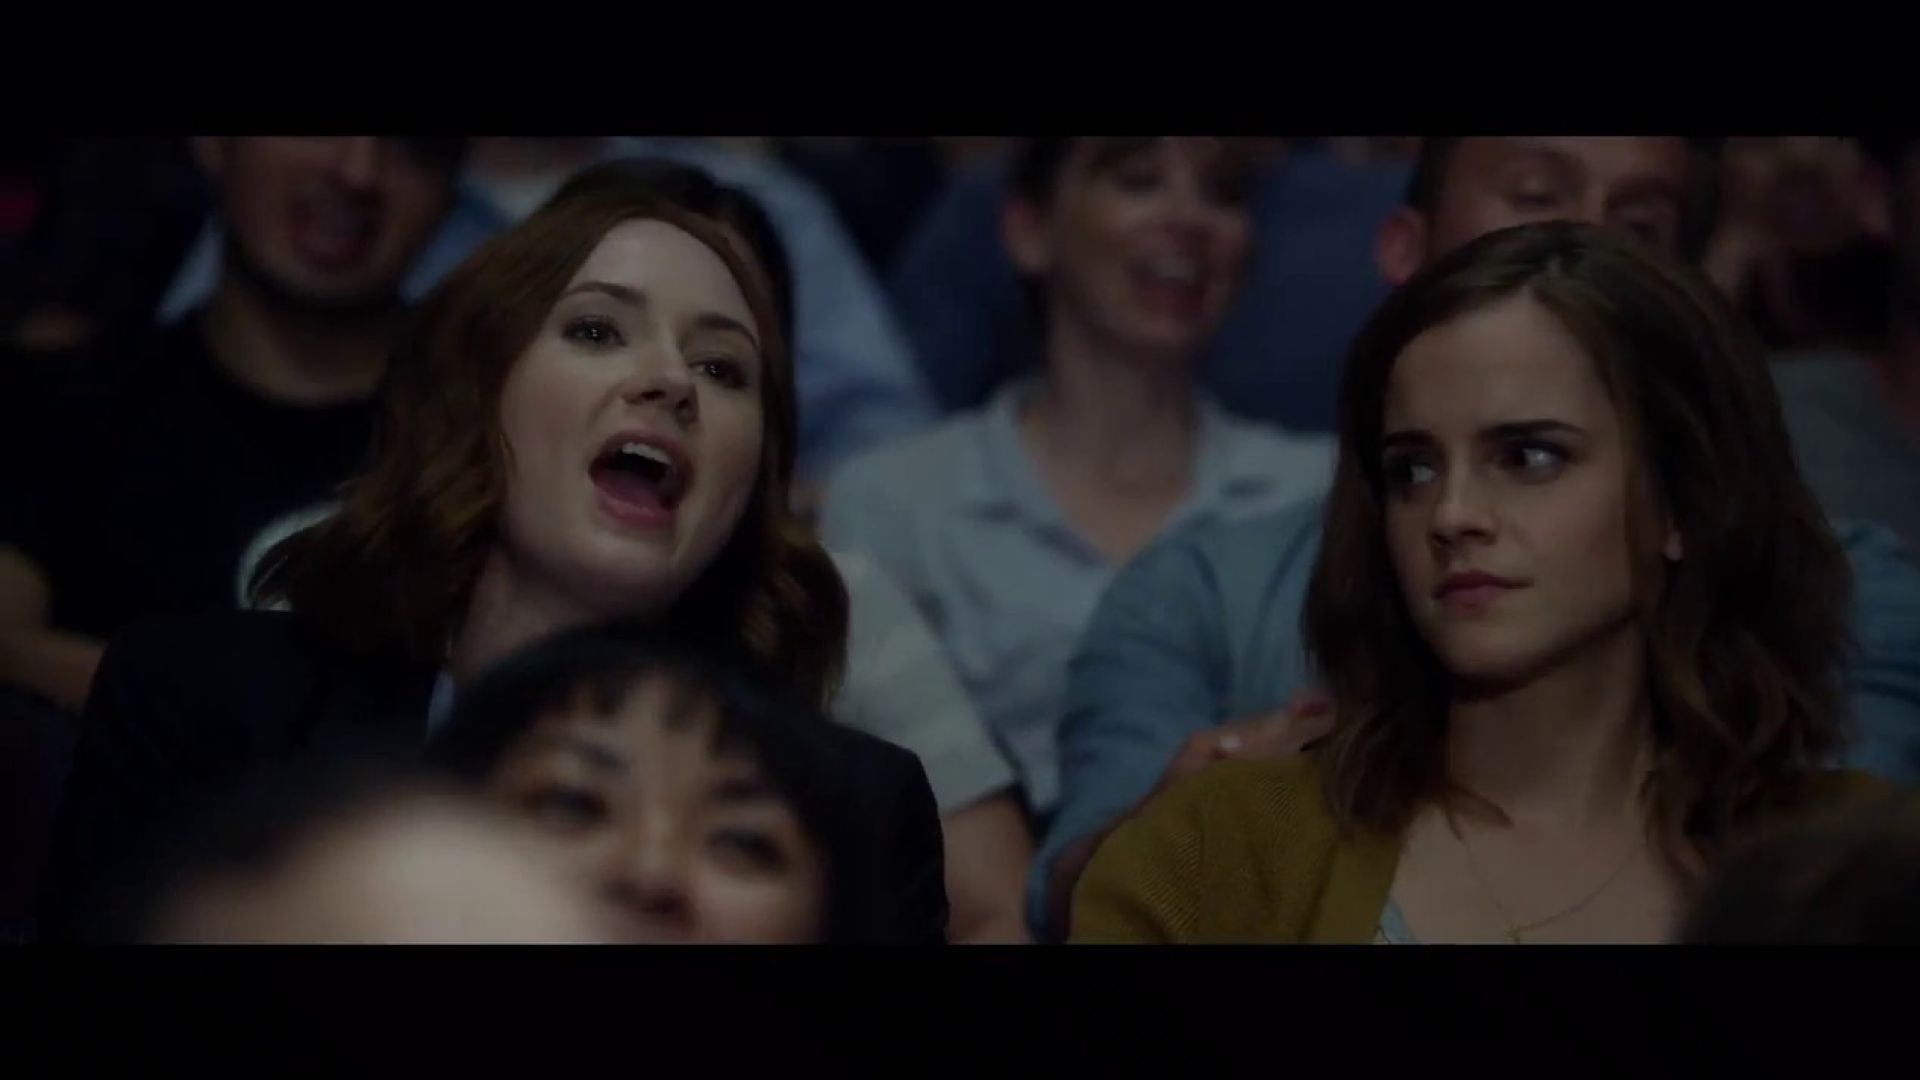 First trailer for The Circle, starring Tom Hanks and Emma Wa